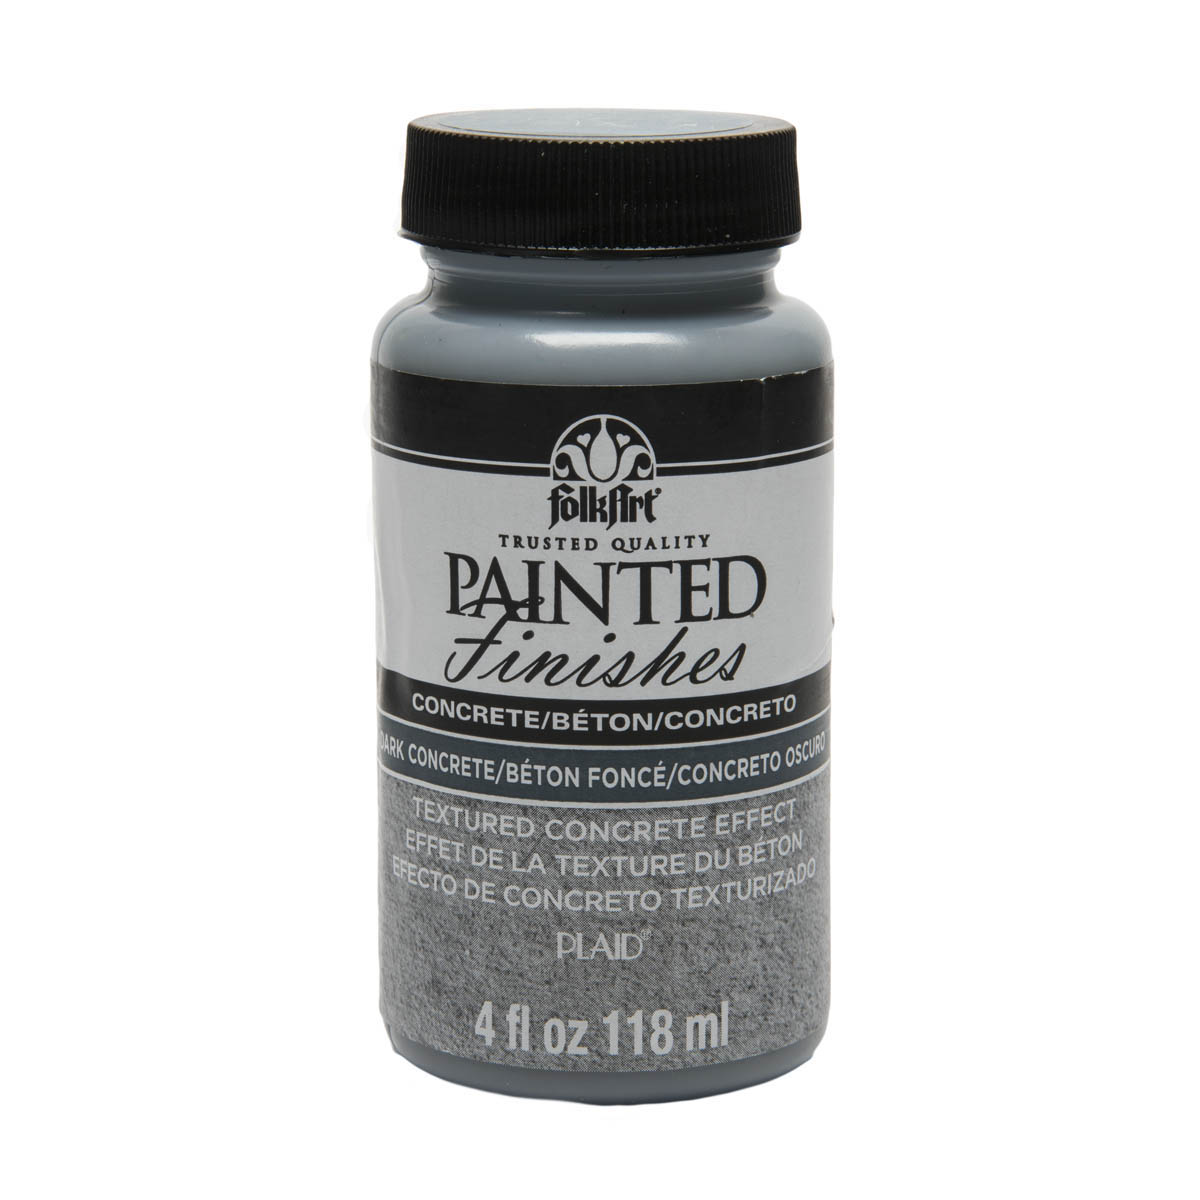 FolkArt ® Painted Finishes - Dark Concrete, 4 oz. - 5101